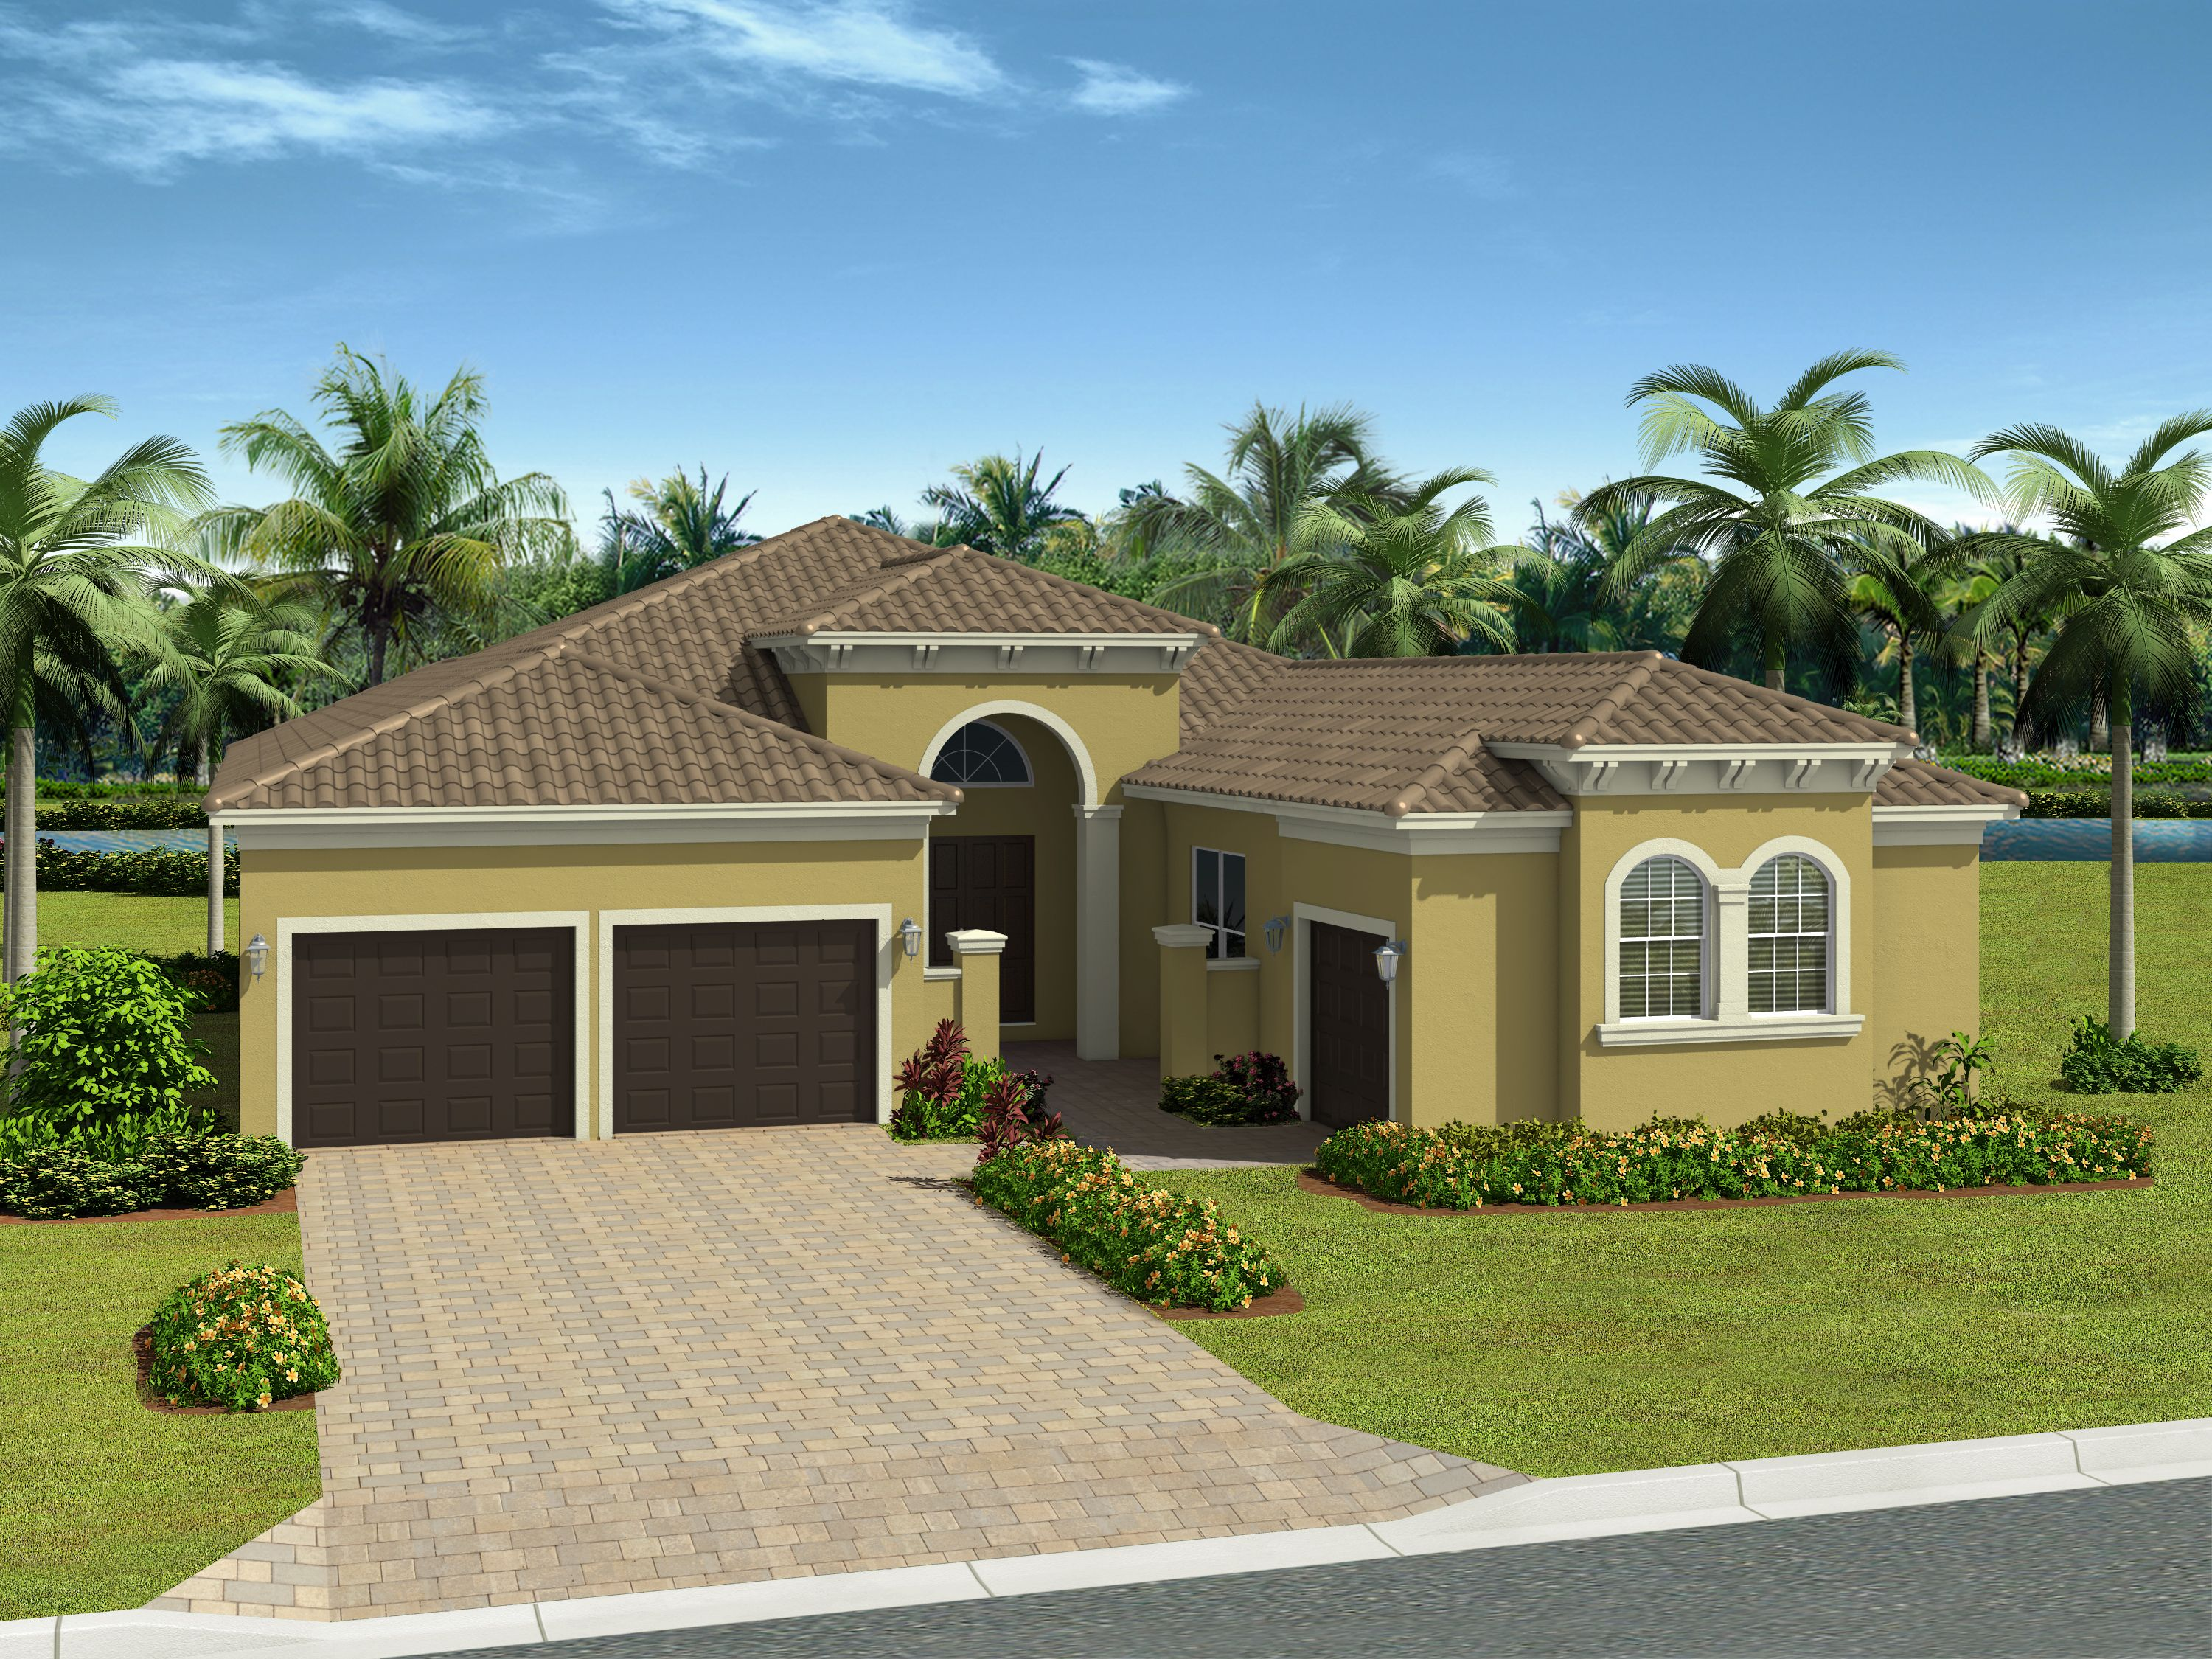 Single Family for Active at Valencia Del Sol - Carlyle 5006 Stone Harbor Circle Wimauma, Florida 33598 United States